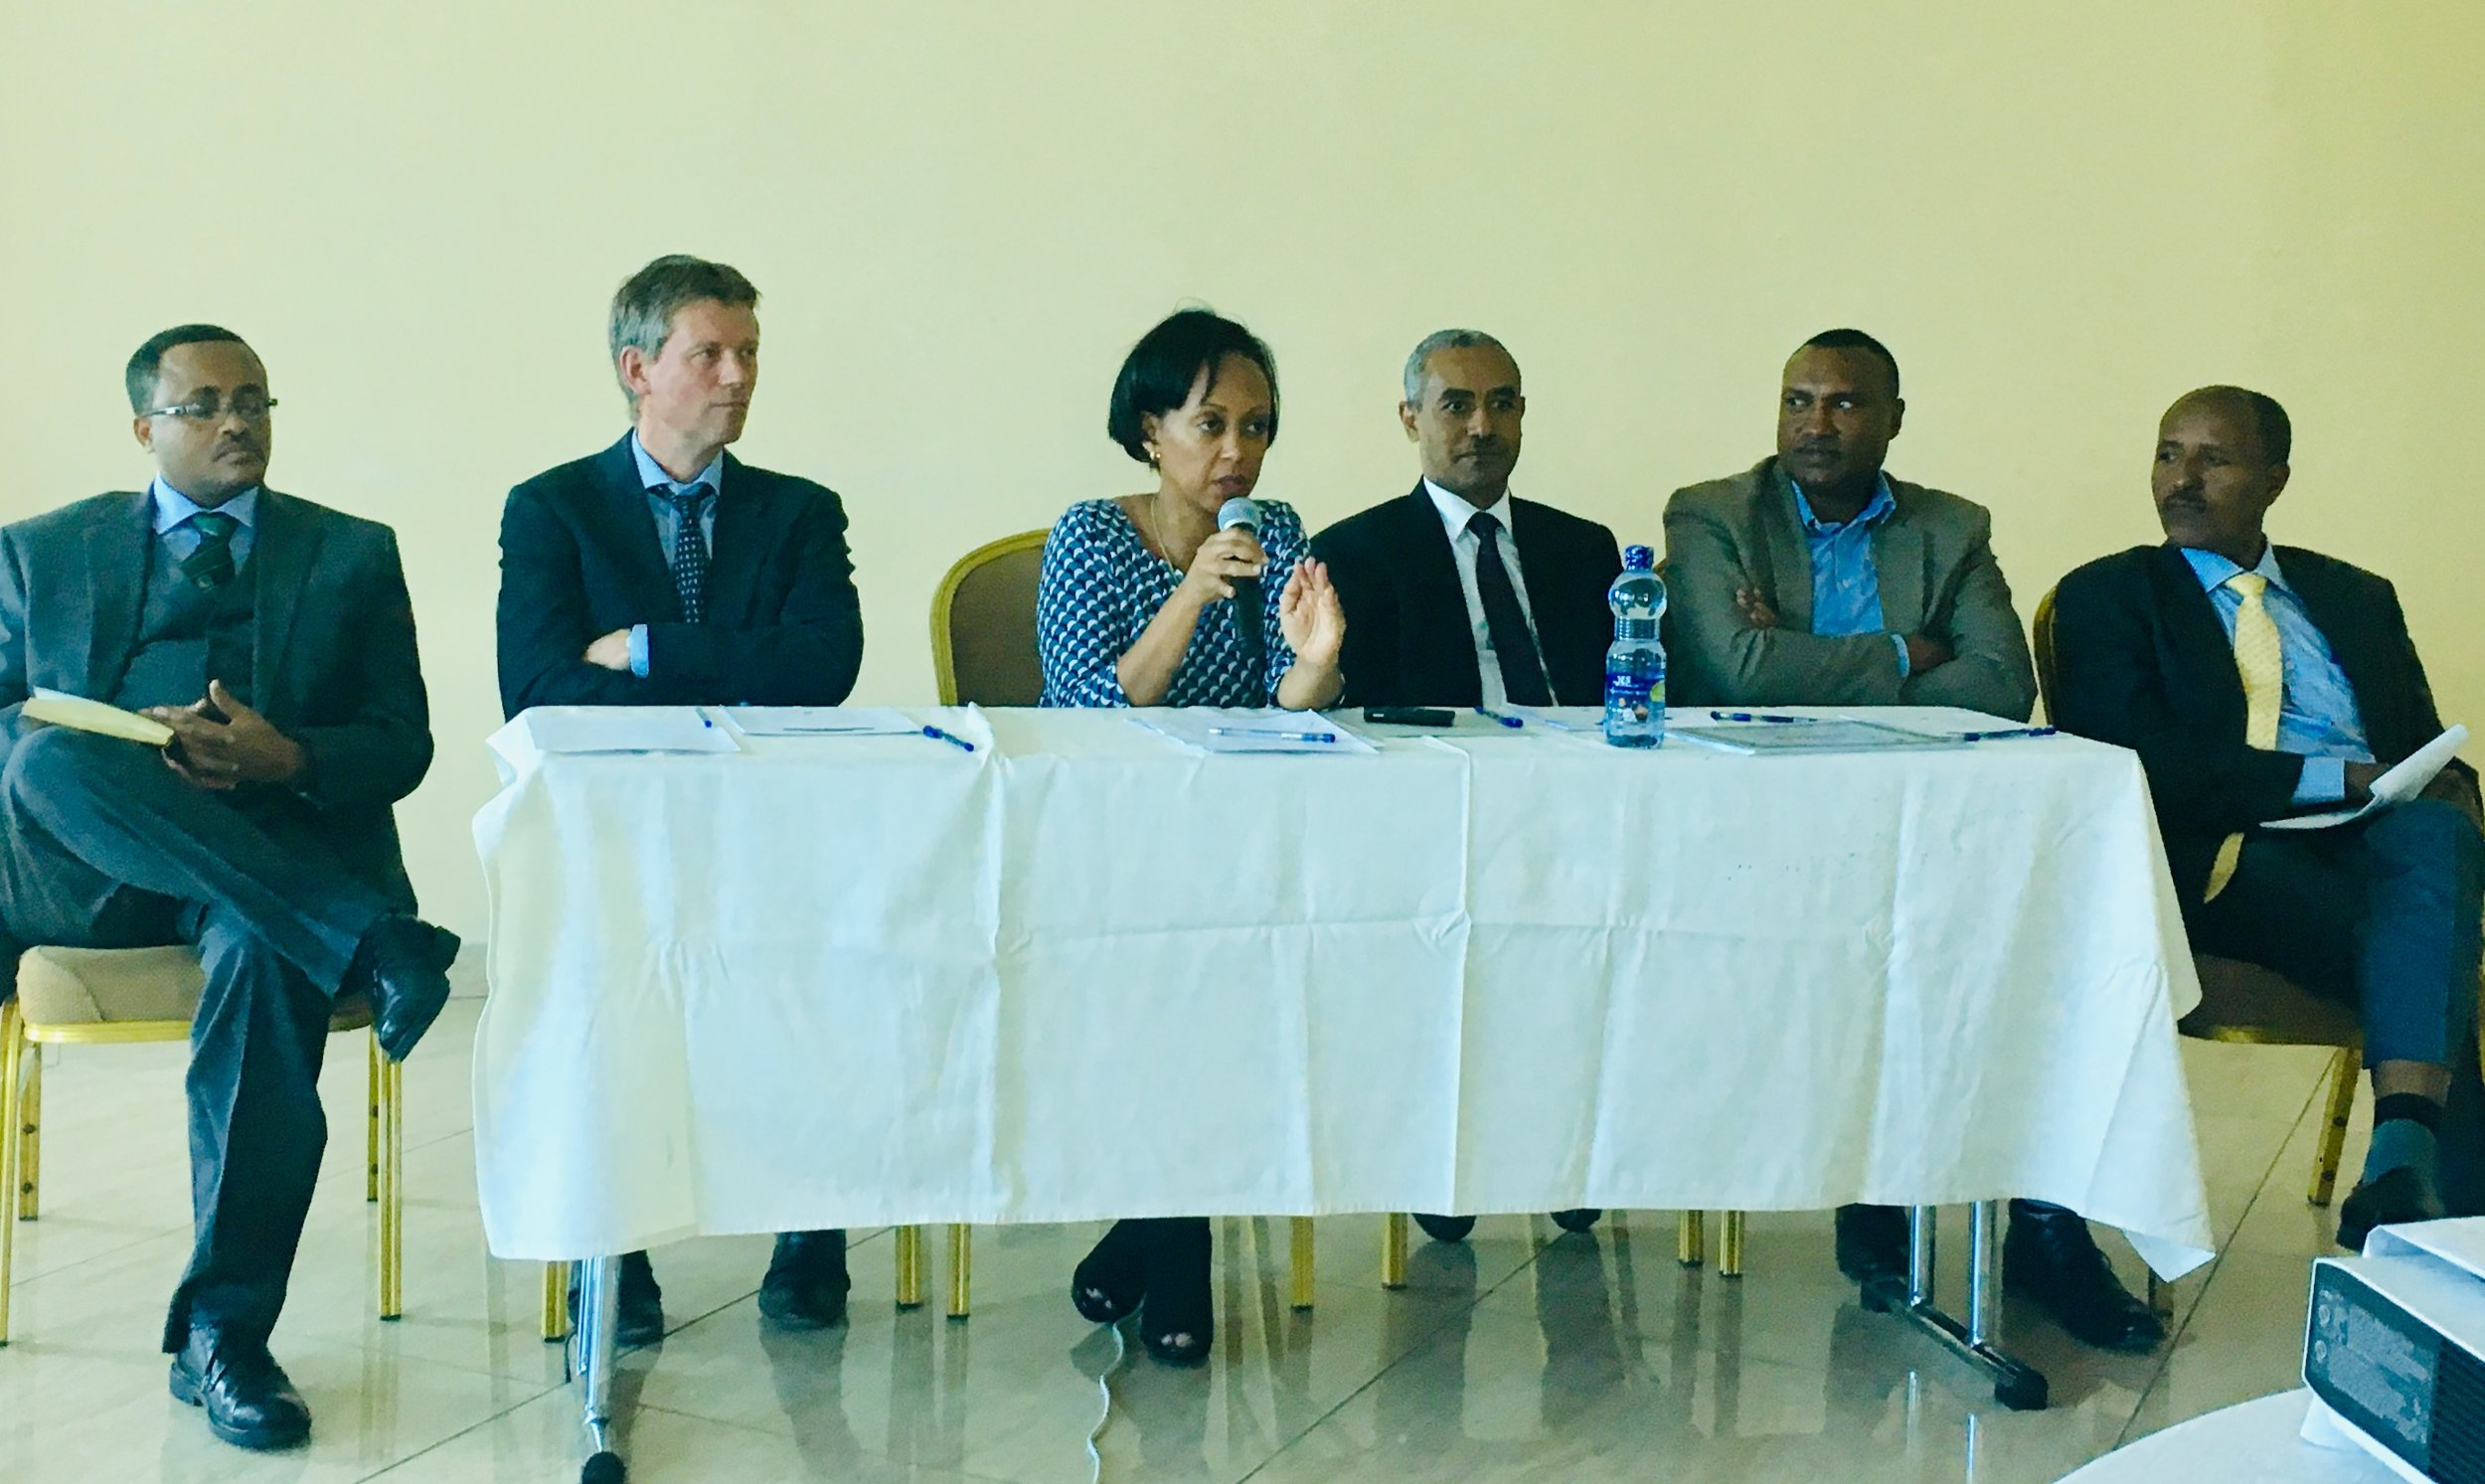 state minister of health Dr. lia Tadesse (center) participates in a panel with ncdi poverty commission co-chair Dr. abraham haileamlak (seated to her left), commission advisor and lancet ncdi poverty commission member dr. ole norheim (seated to her right) and commission members (from left to right) dr. wubaye welelgne, dr. solomon memire, and dr. molla gedefaw.